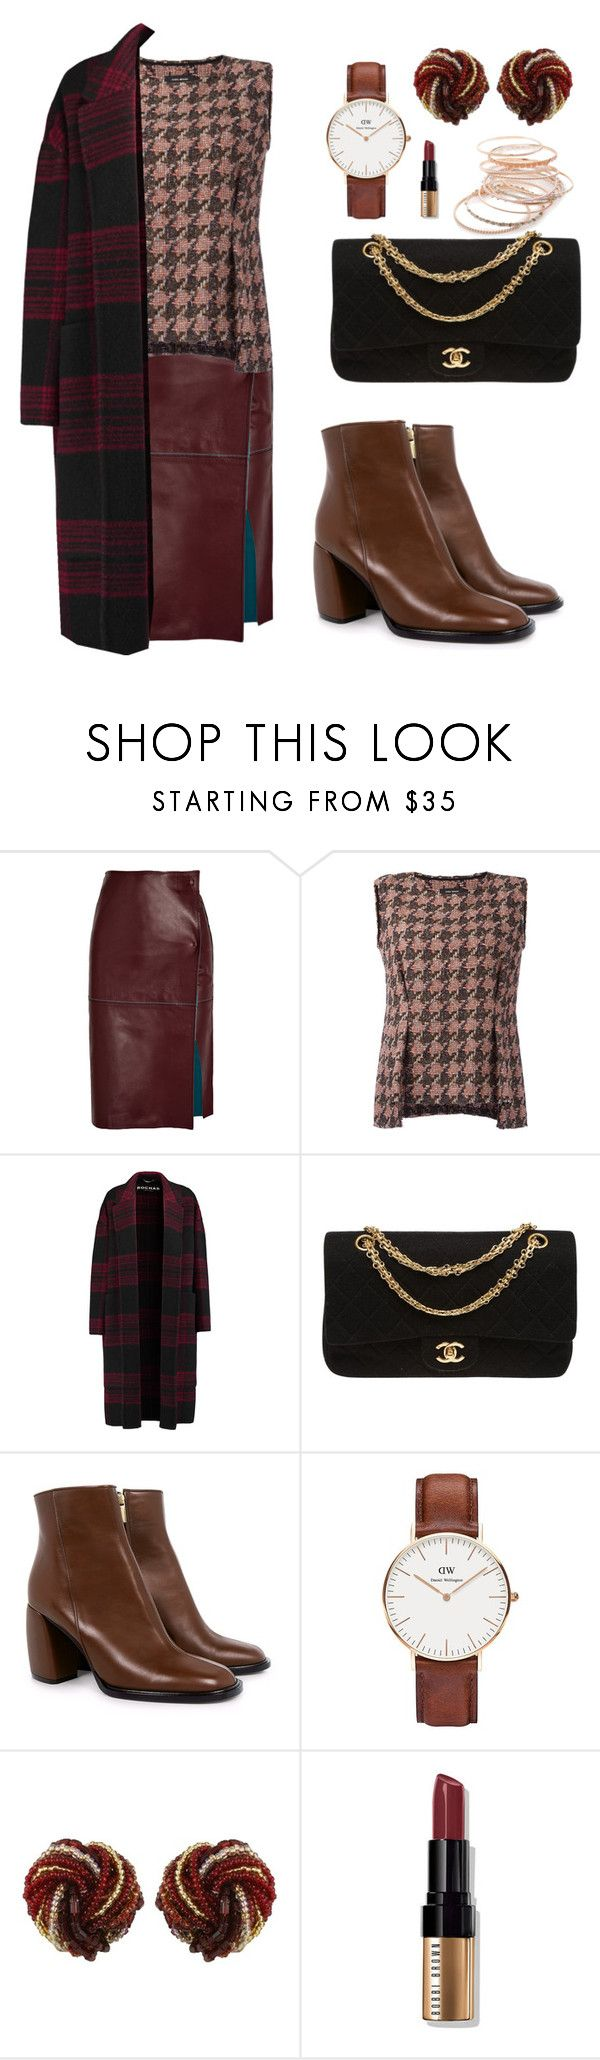 """""""cartela clássica do outono."""" by jaquemel ❤ liked on Polyvore featuring By Malene Birger, Isabel Marant, Rochas, Chanel, TIBI, Daniel Wellington, Bobbi Brown Cosmetics and Red Camel"""